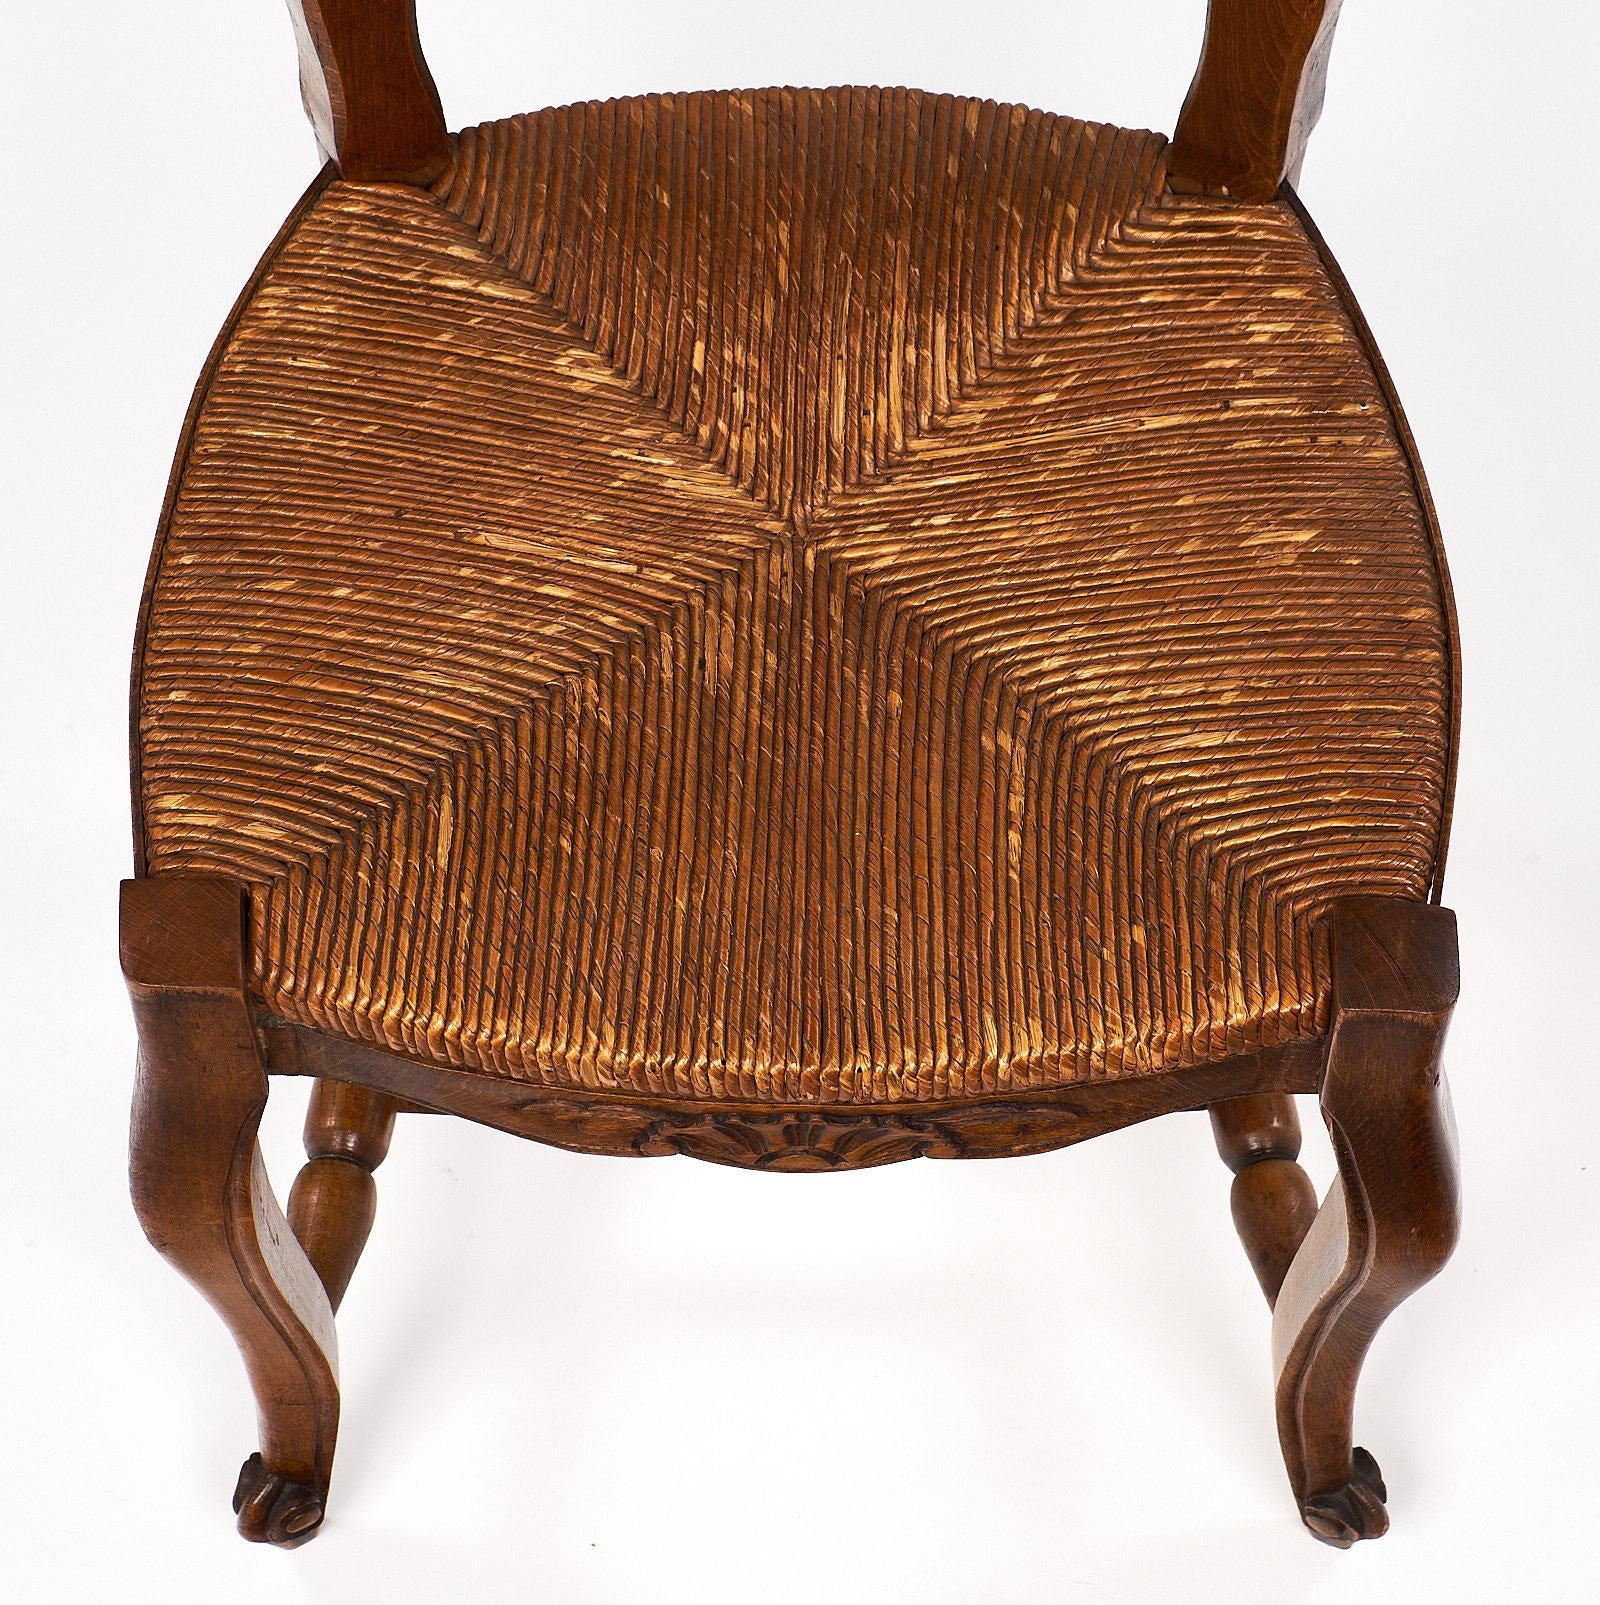 French Antique Wicker And Wood Dining Chairs For Sale   Image 4 Of 10